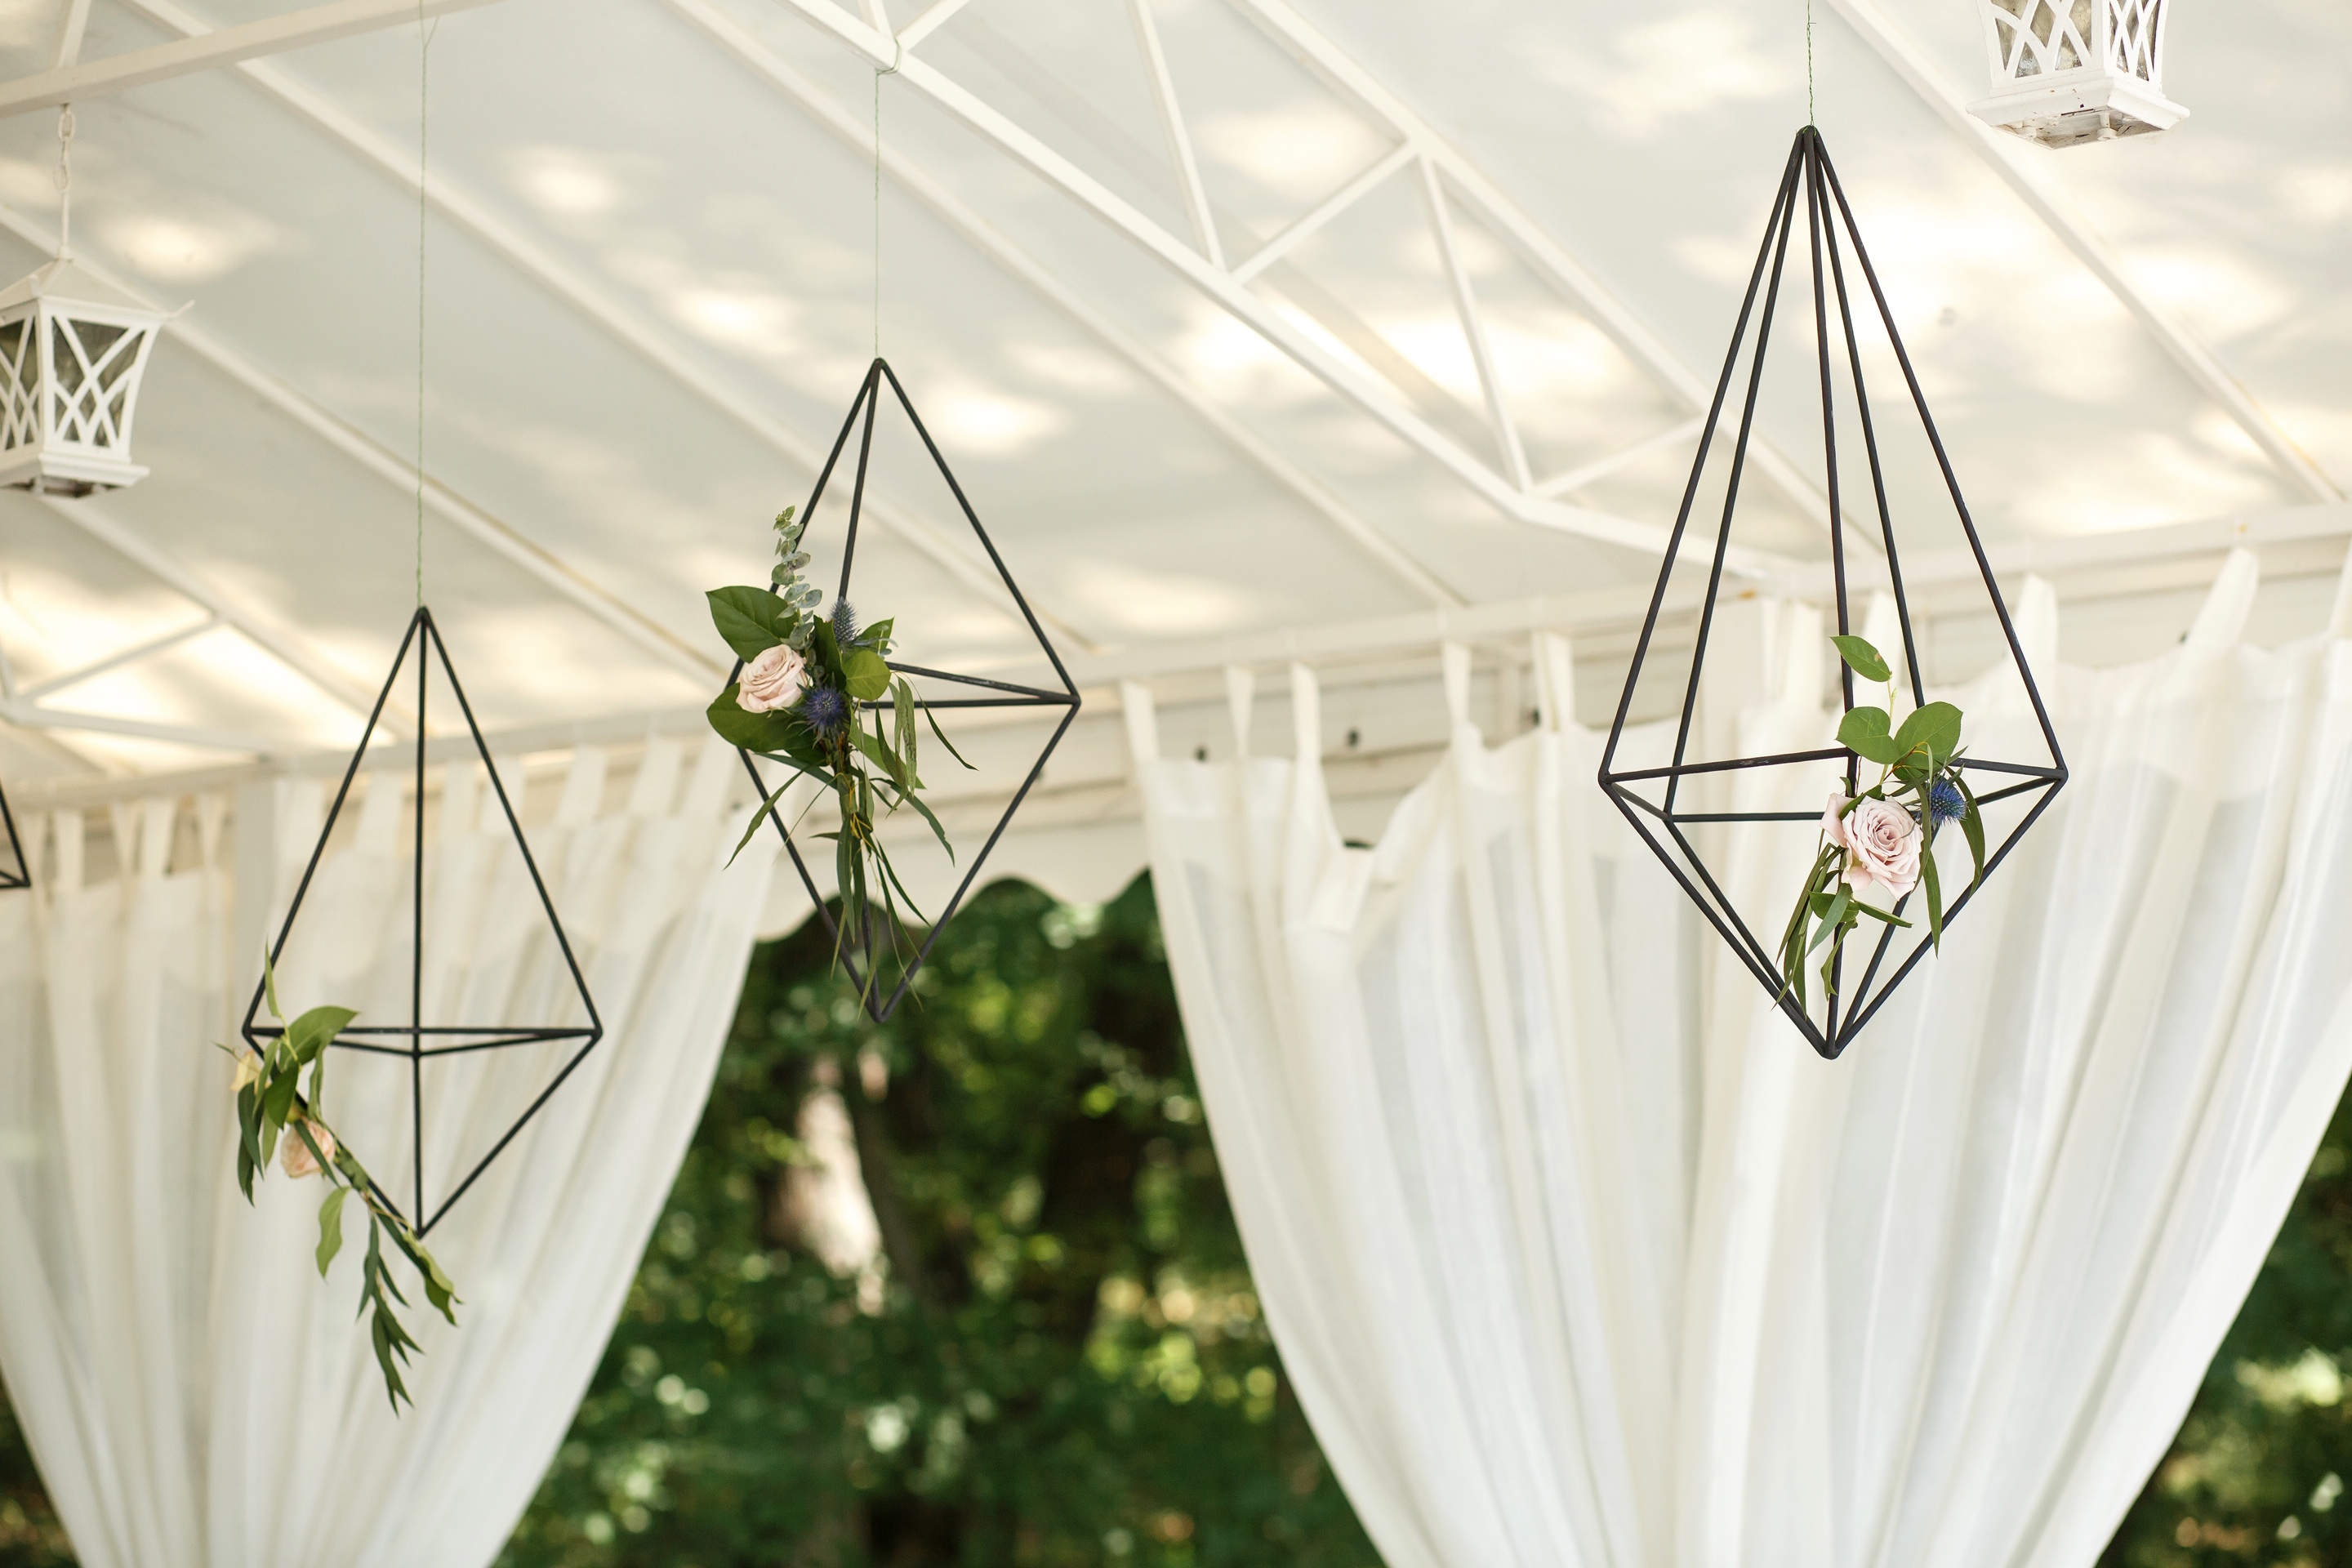 Decorative Hanging Cages With Fresh Flowers. Event Flowers Decoration. Wedding Decor.